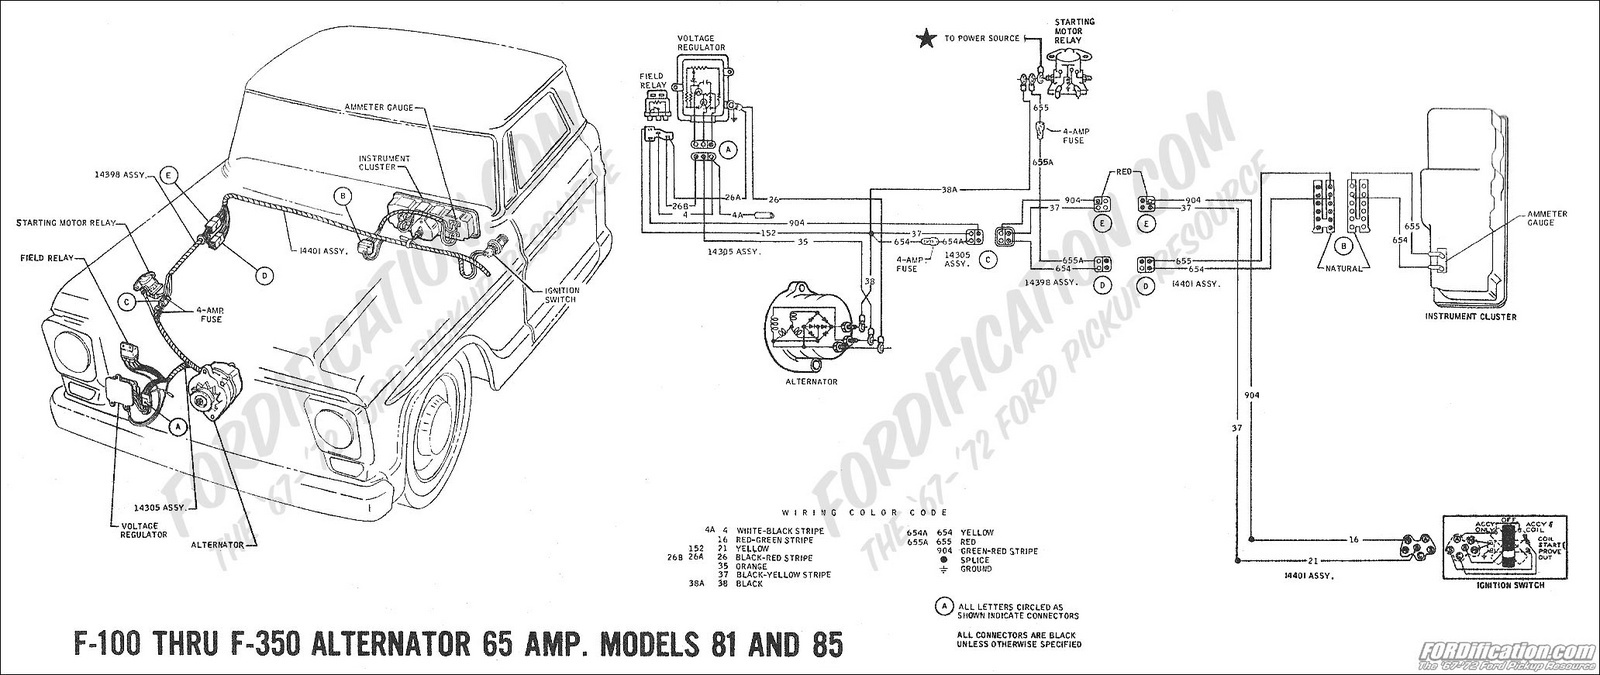 Alternator Wiring Diagram 1966 Ford Pu Wiring Diagrams Box GM Alternator  Wiring Diagram 1977 Chevy Alternator Wiring Diagram